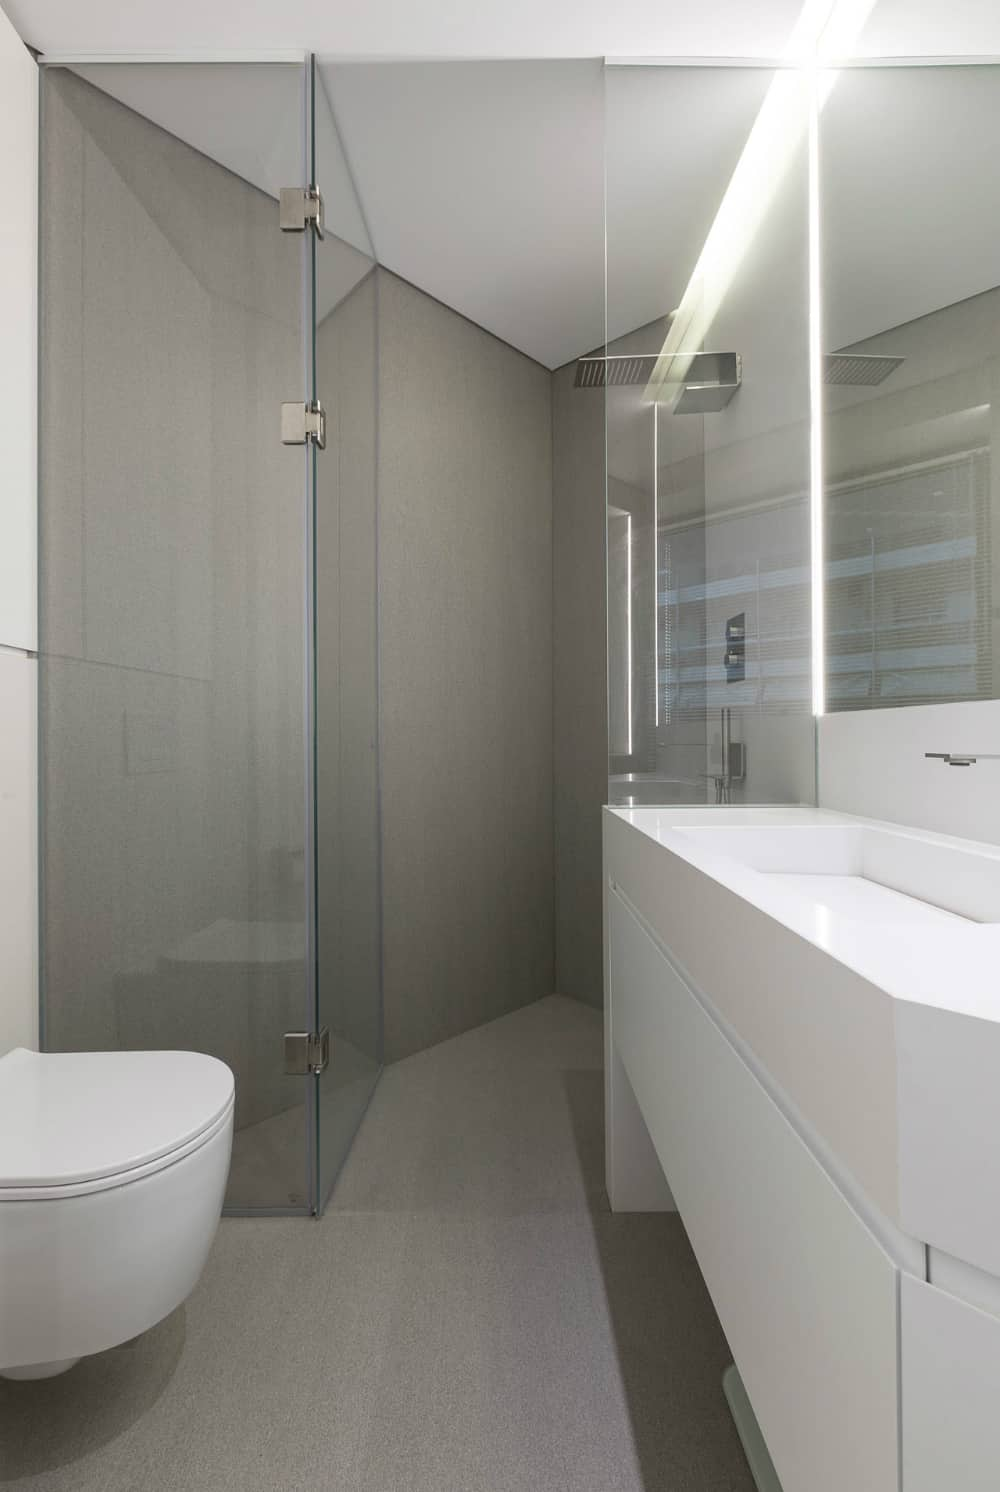 Corner shower stall allows effecient use of square feet